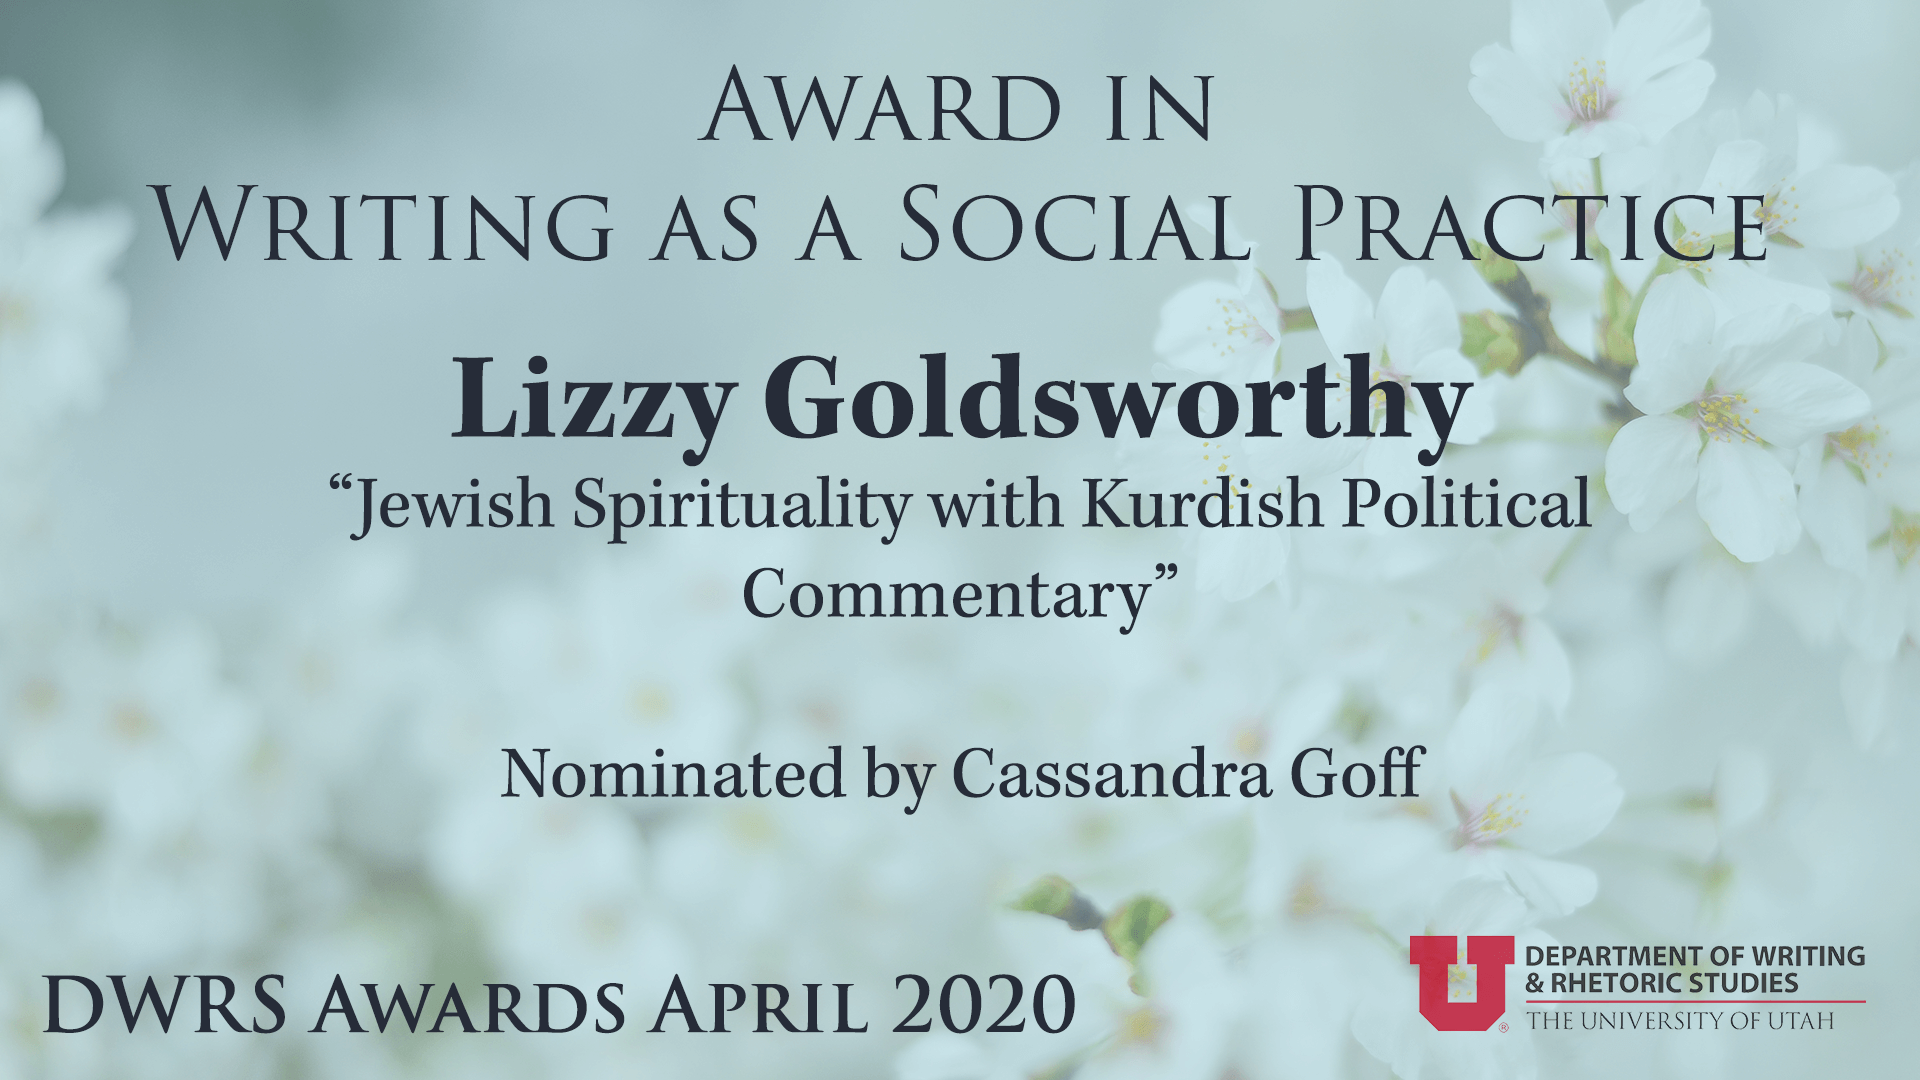 Award in Writing as a Social Practice — Lizzy Goldsworthy